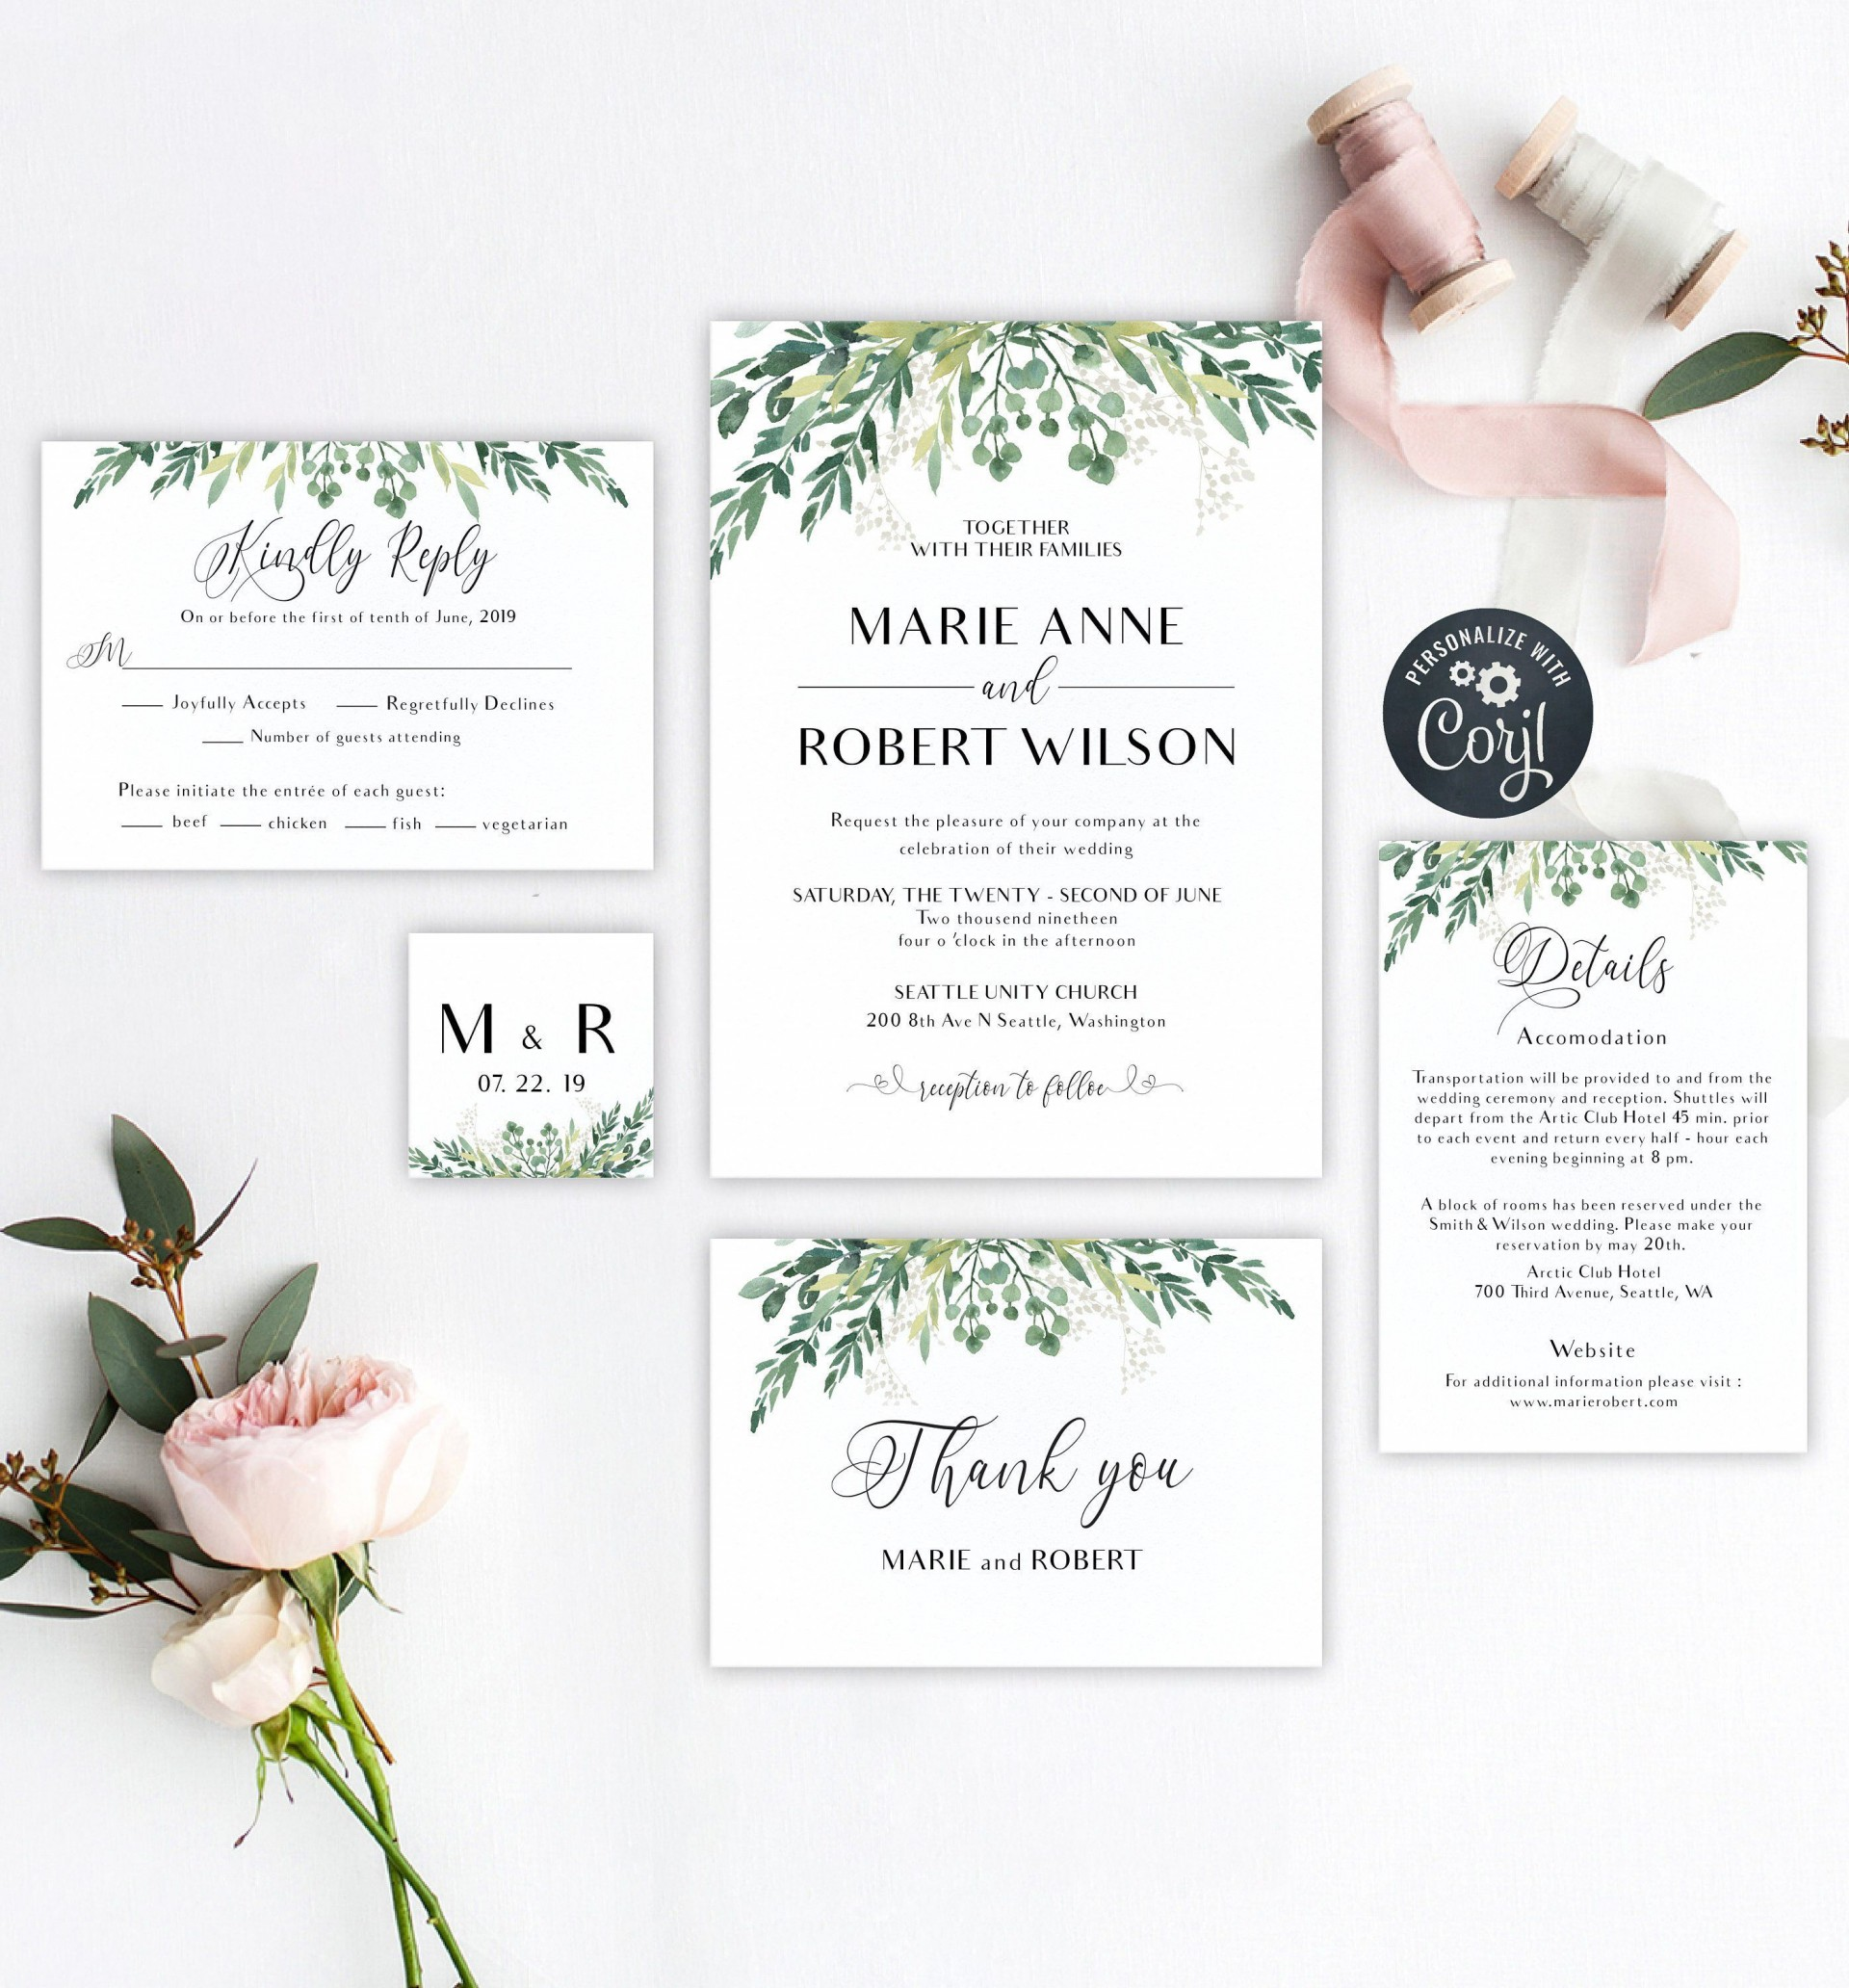 003 Exceptional Rustic Wedding Invitation Template Design  Templates Free For Word Maker Photoshop1920